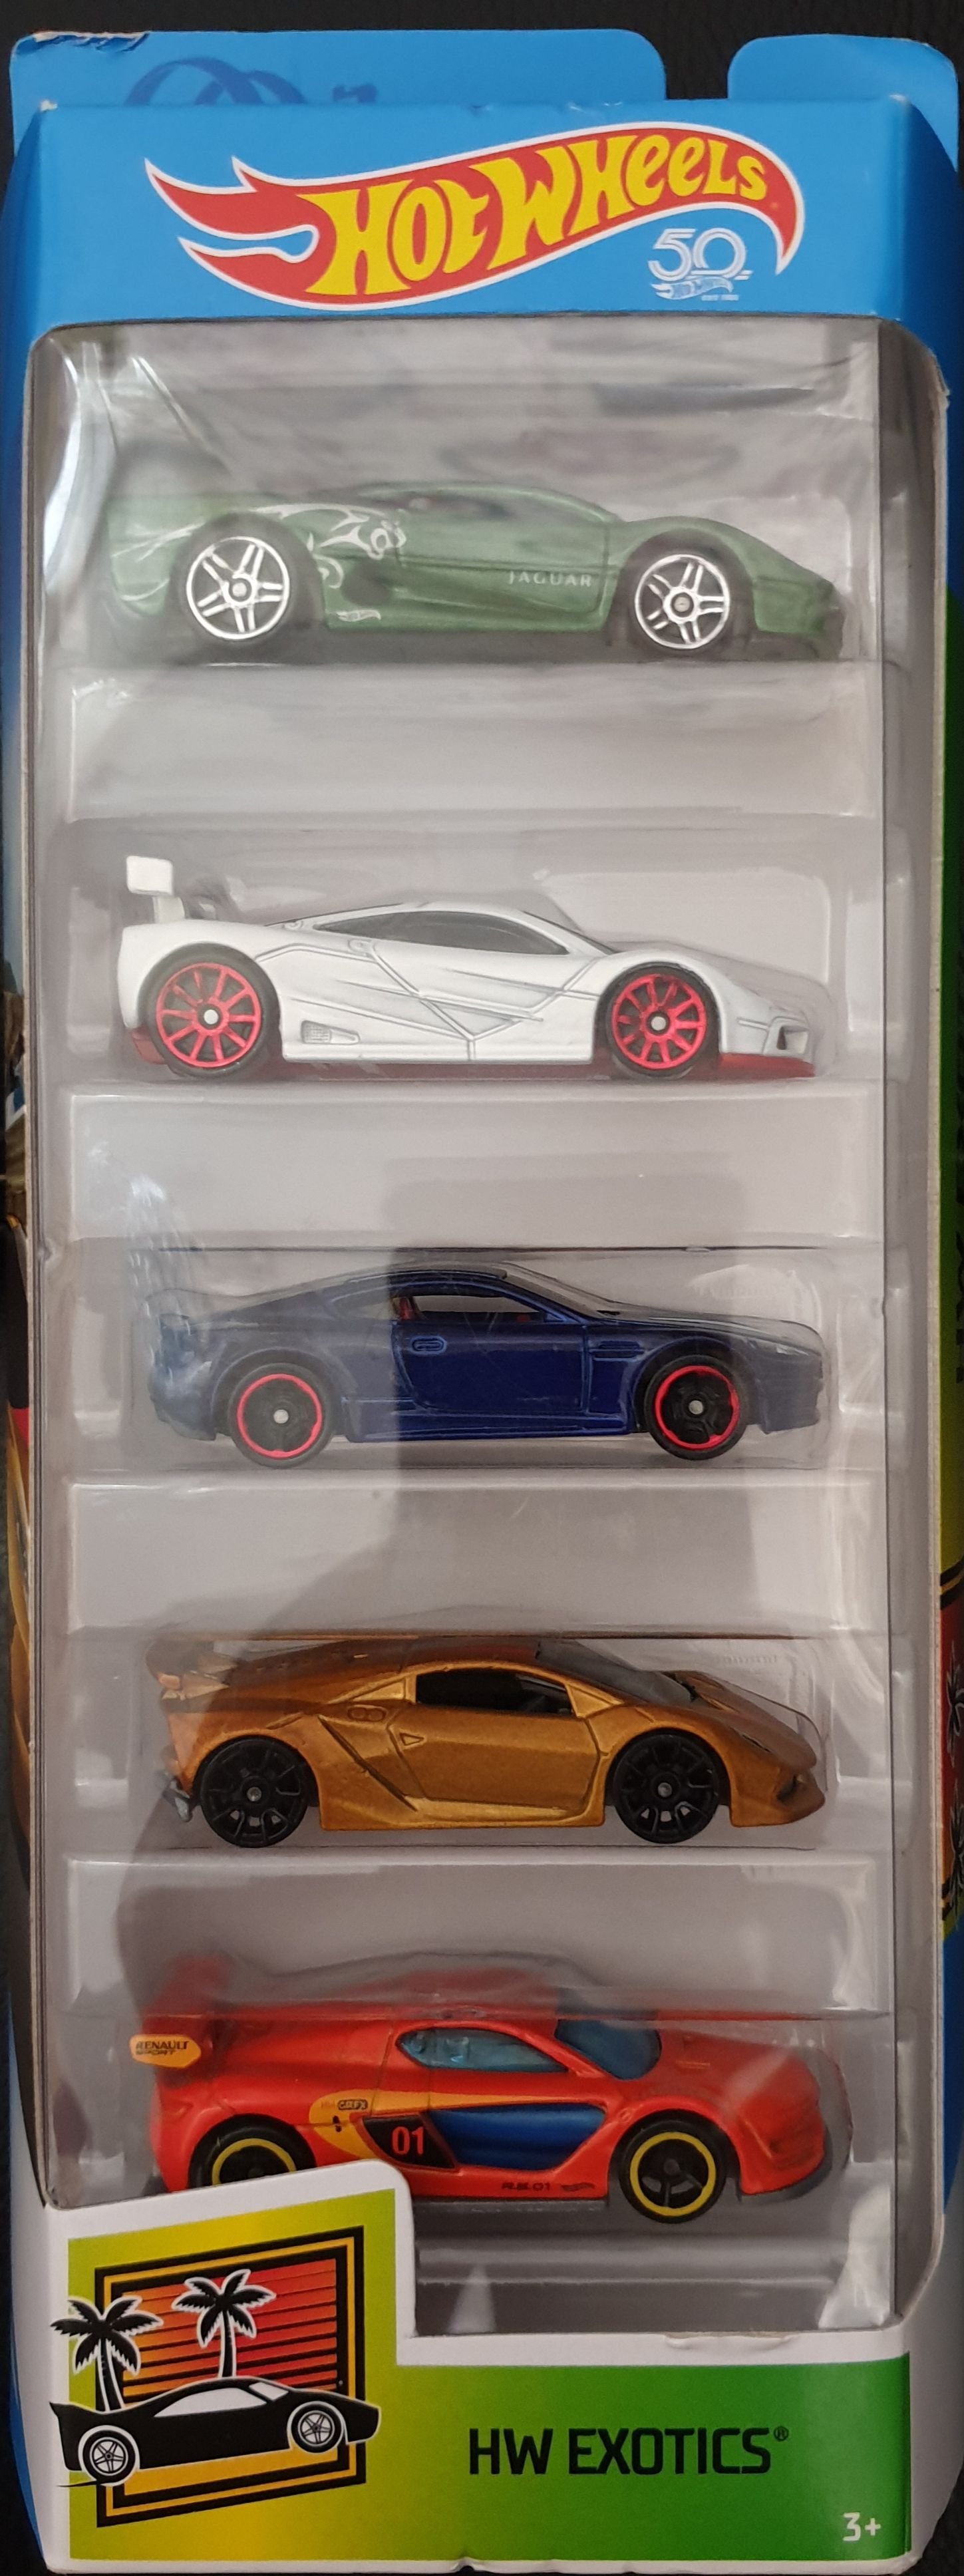 2018 HW Exotics 5 Pack : Aston Martin DBS Toy Car, Die Cast, And Hot Wheels (2018) back image (back cover, second image)